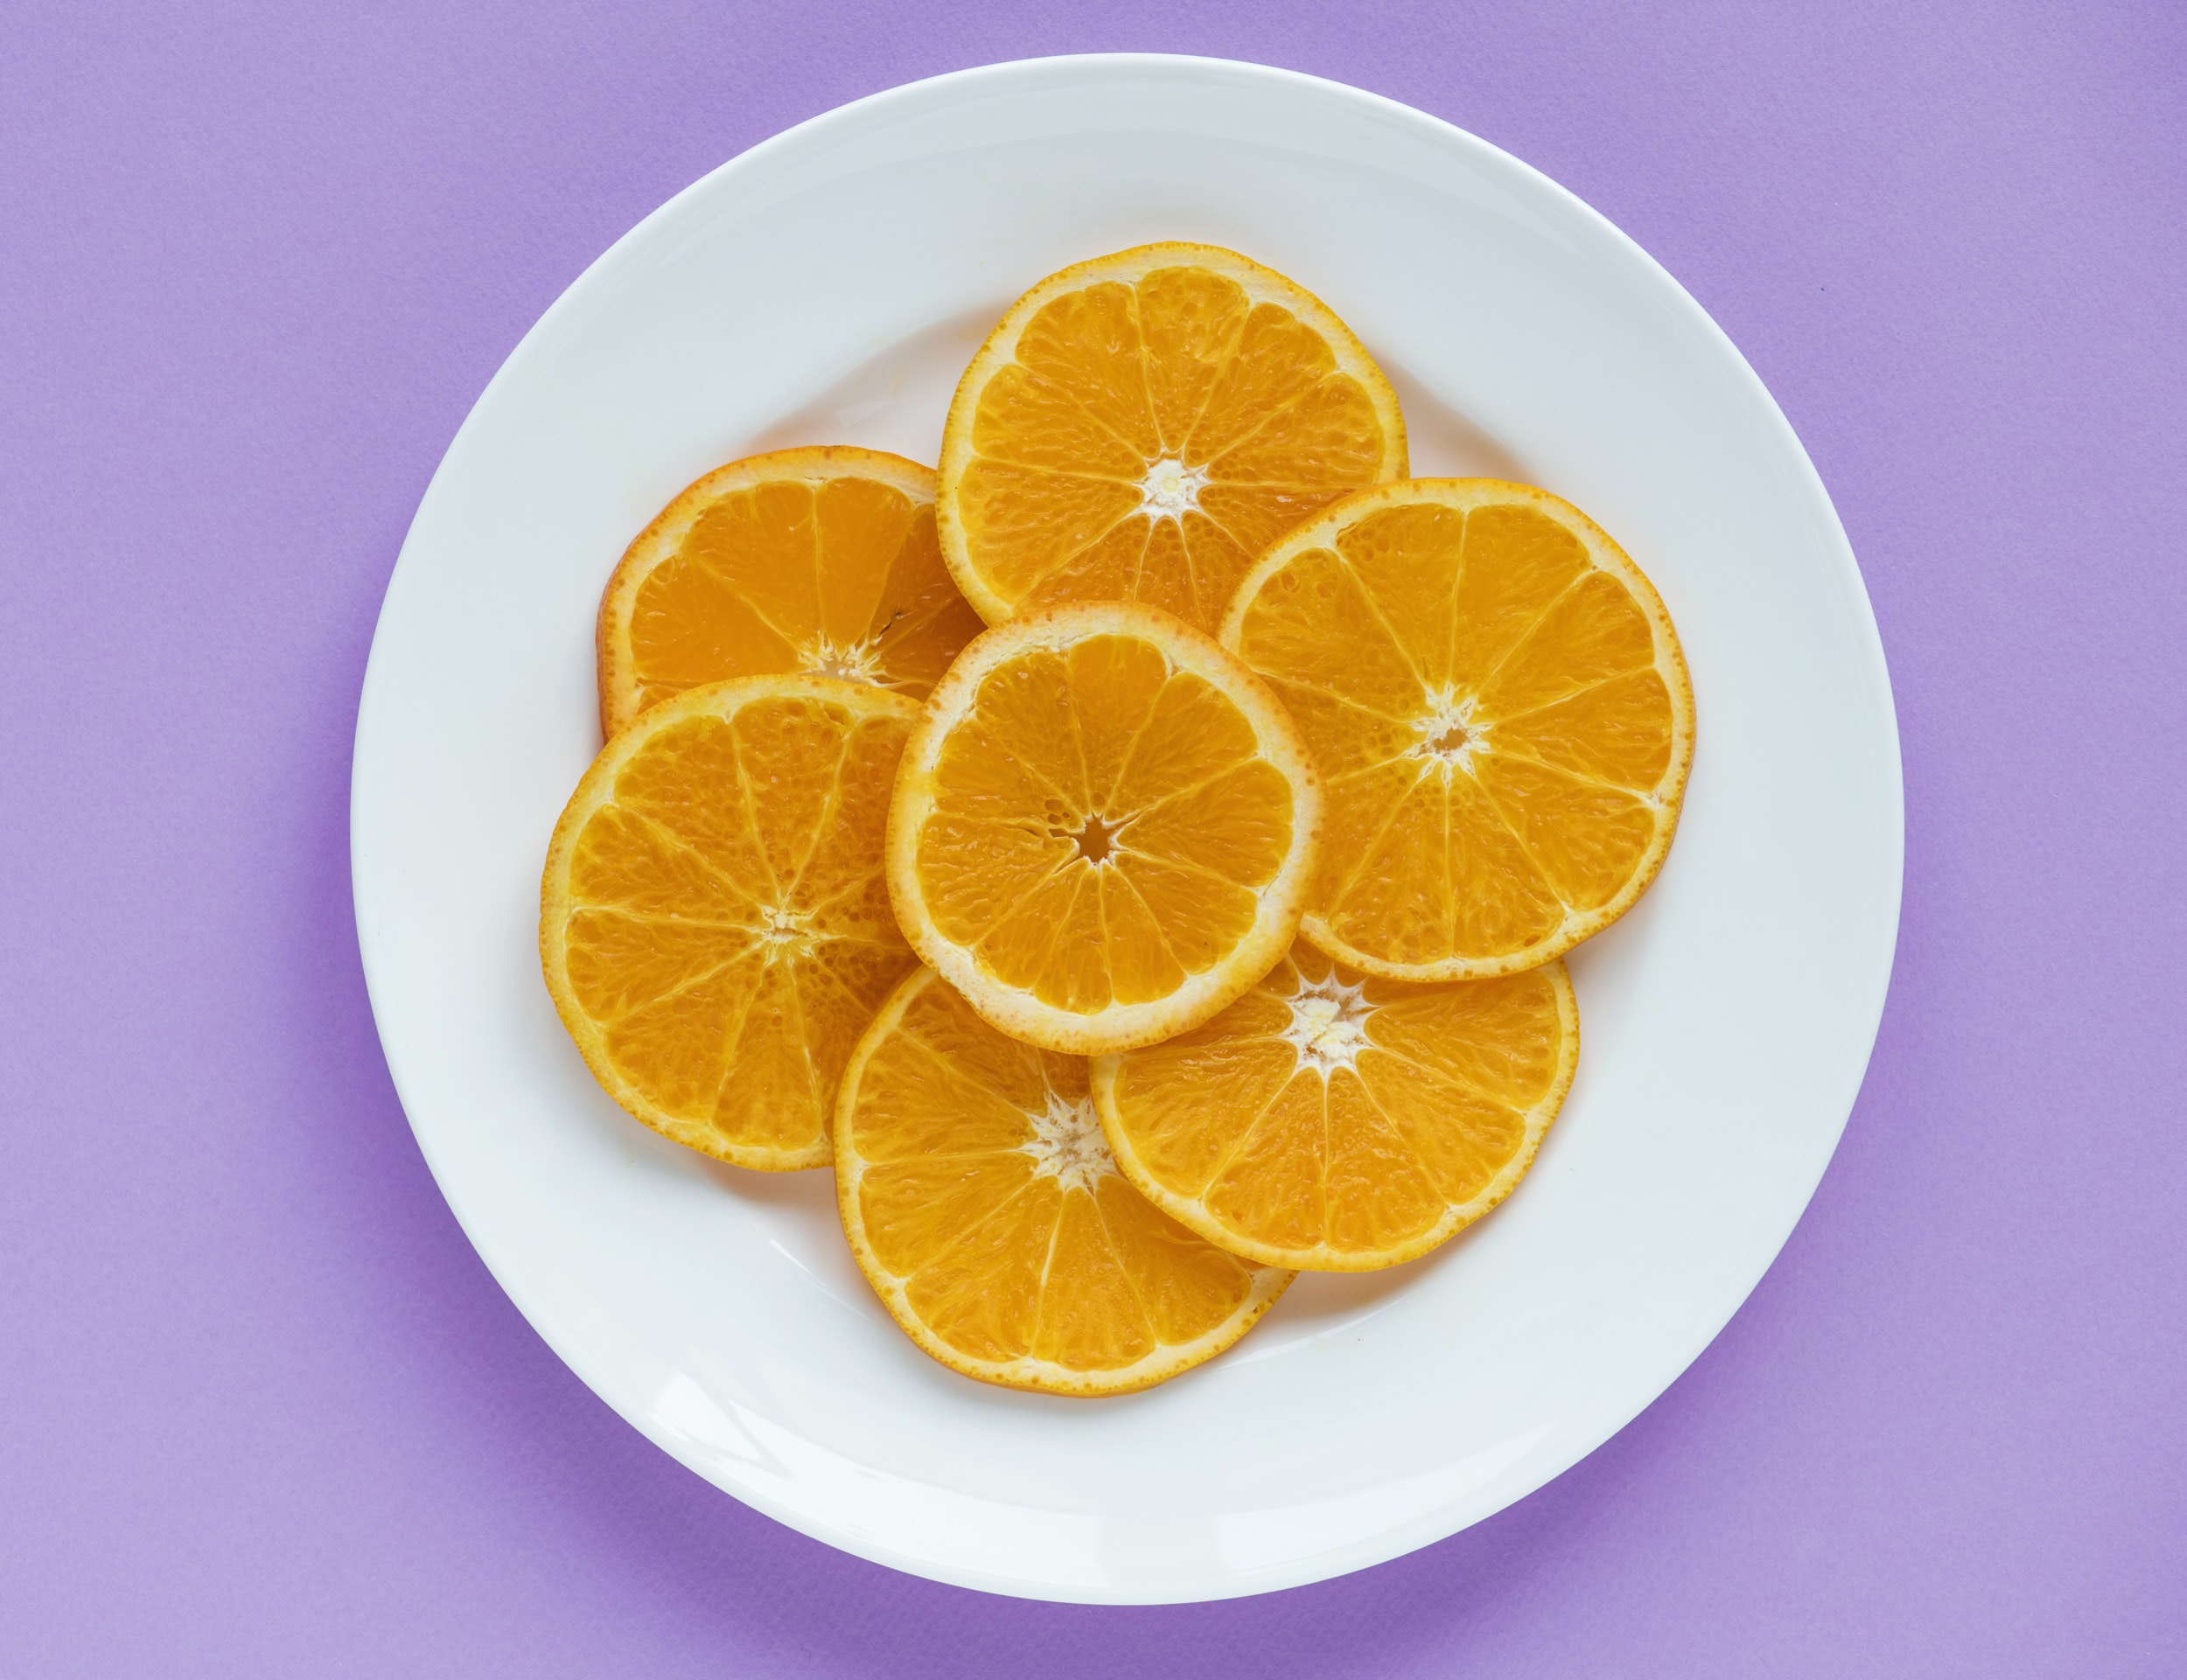 slice of orange fruit on plate